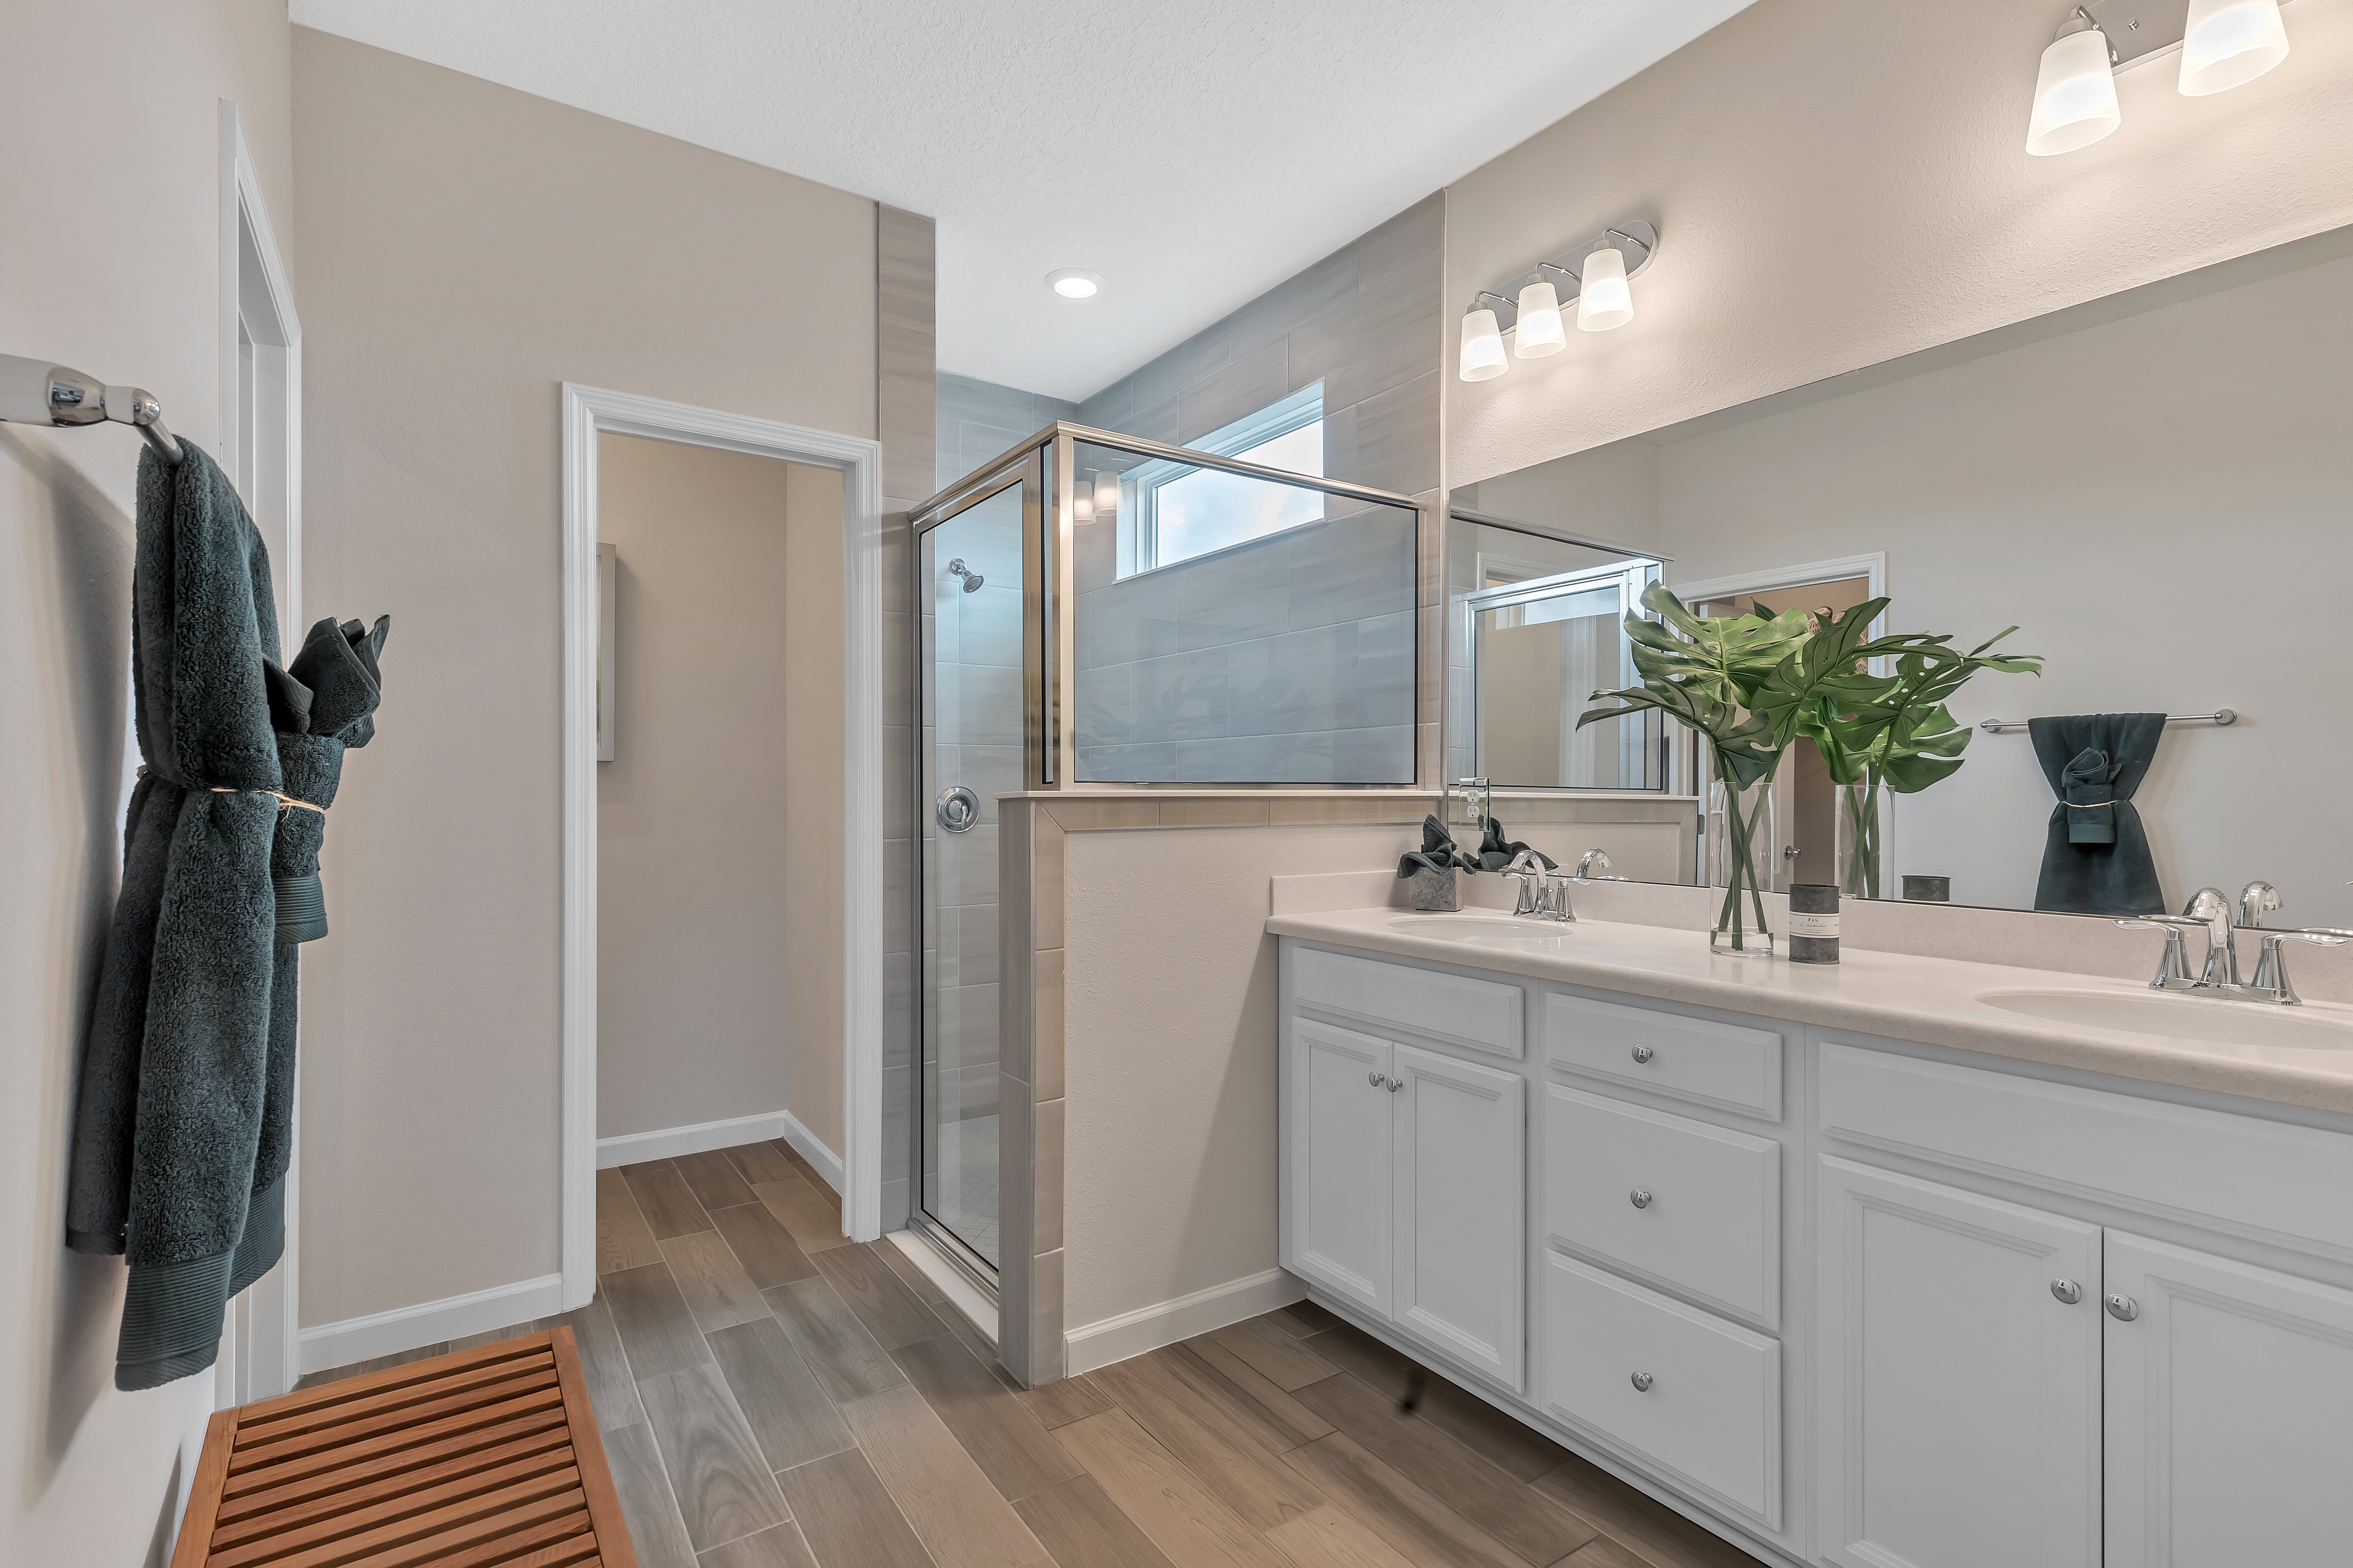 Bathroom featured in the KATE By Lennar in Jacksonville-St. Augustine, FL